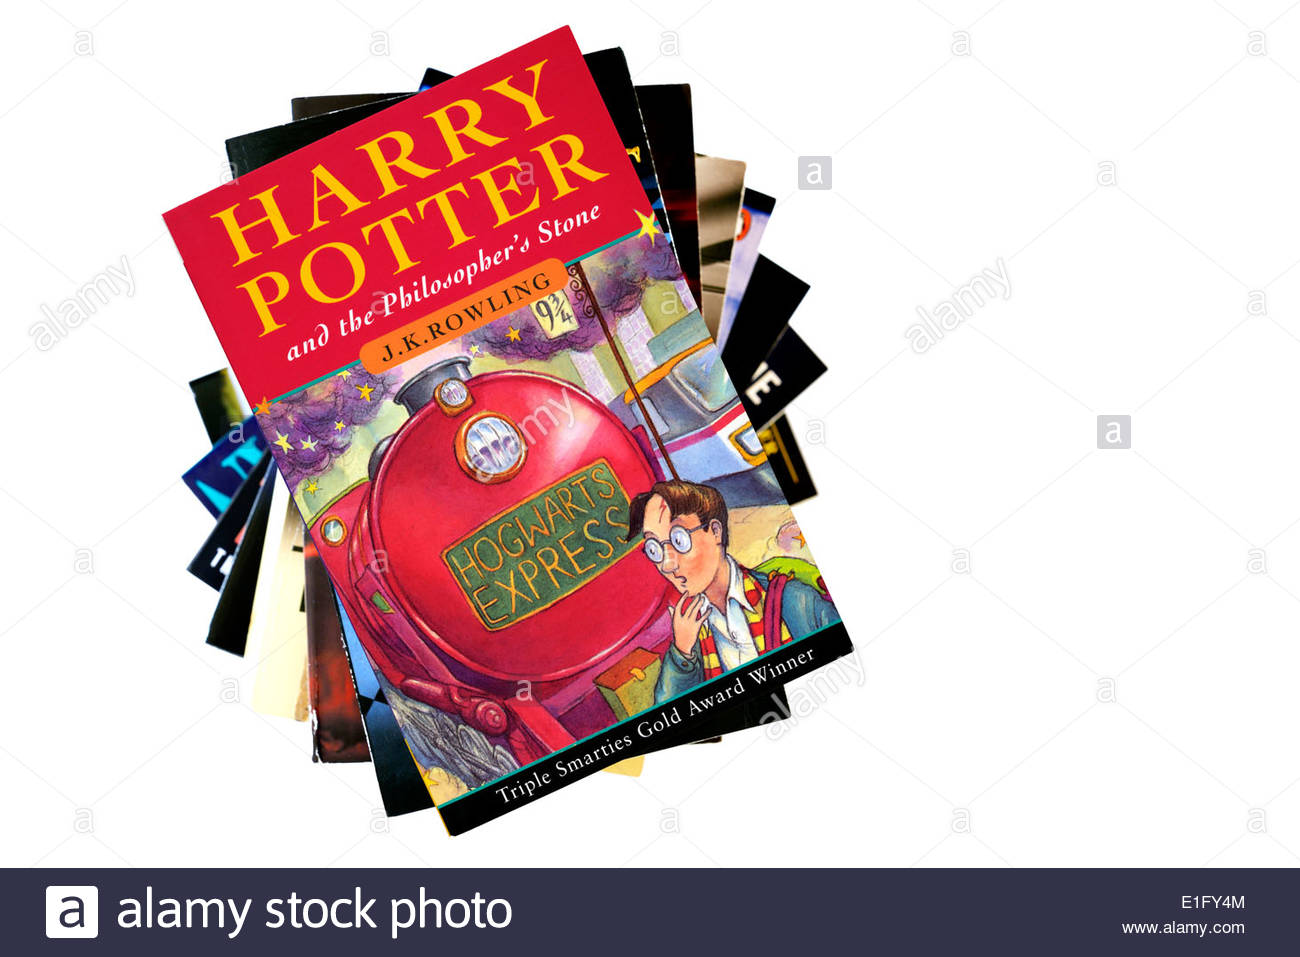 Harry Potter and the Philosopher's Stone by J K Rowling, paperback title stacked used books, England - Stock Image